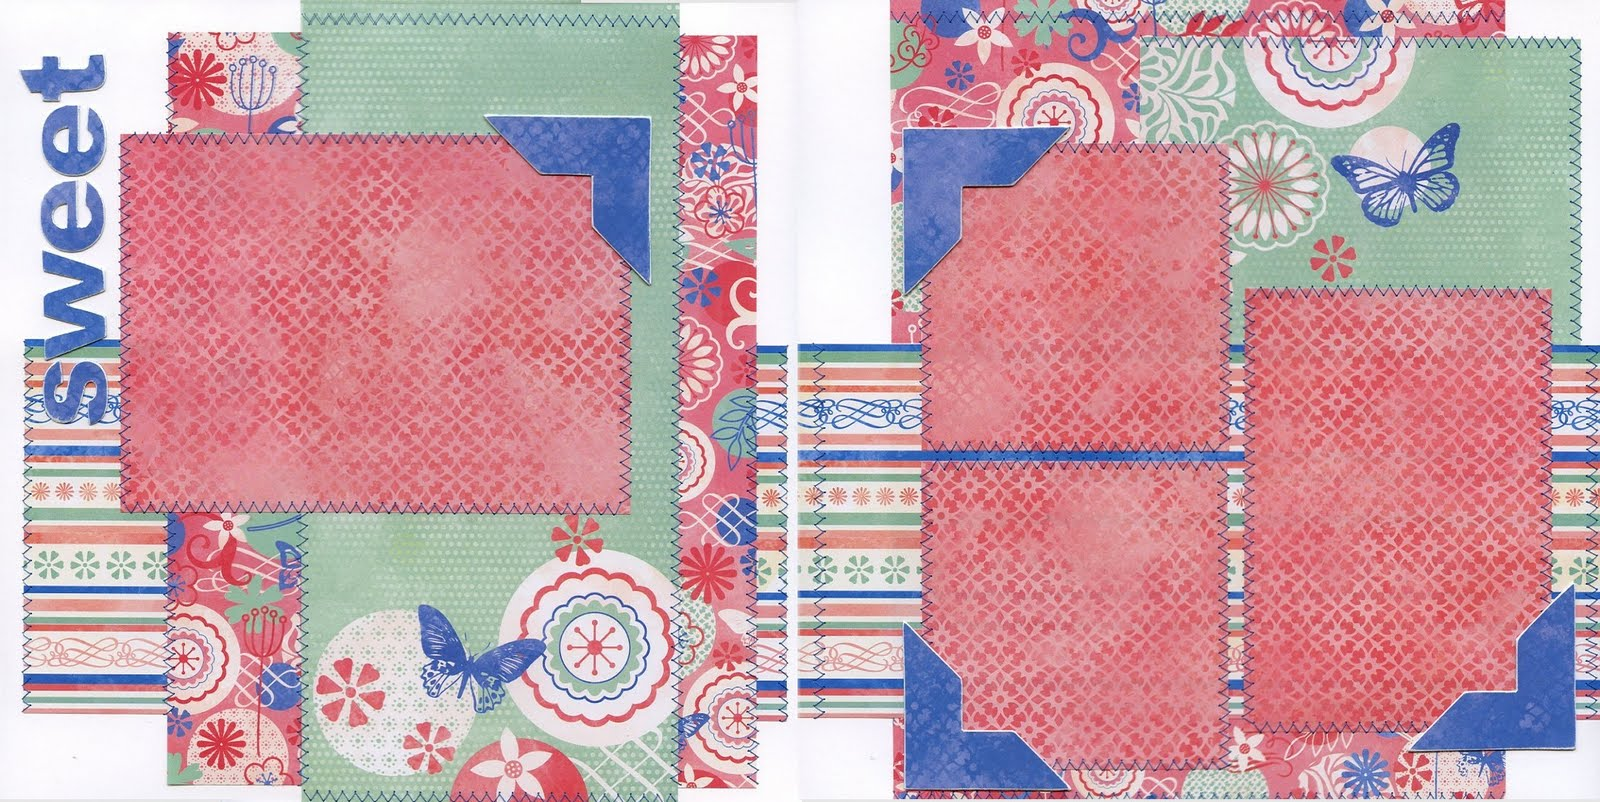 Scrapbooking For Others: PREMADE SCRAPBOOK PAGES FOR SALE